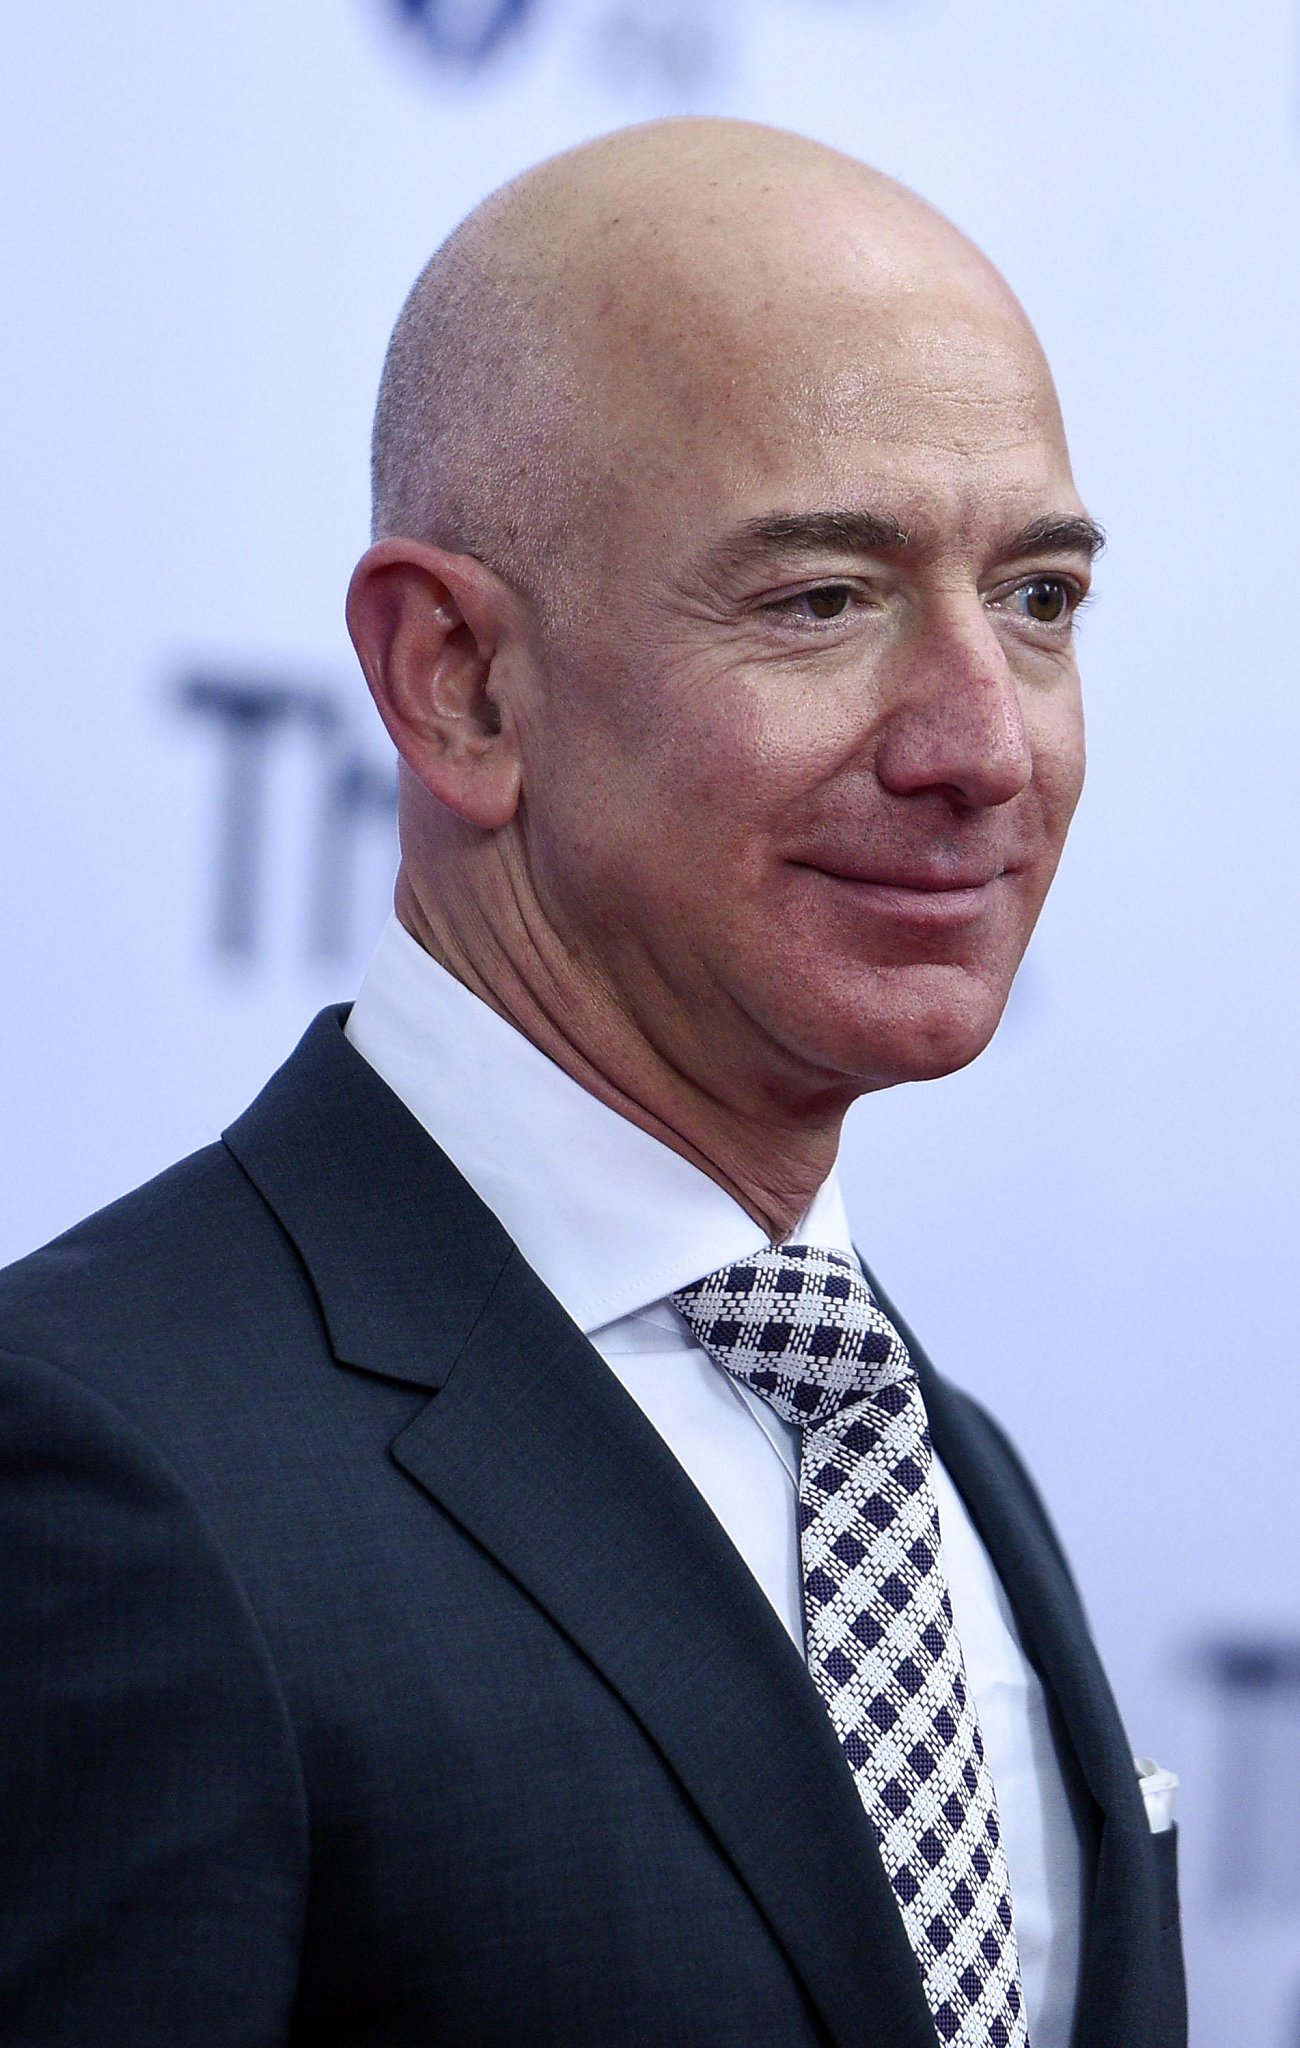 jeff bezos job amazon ago years